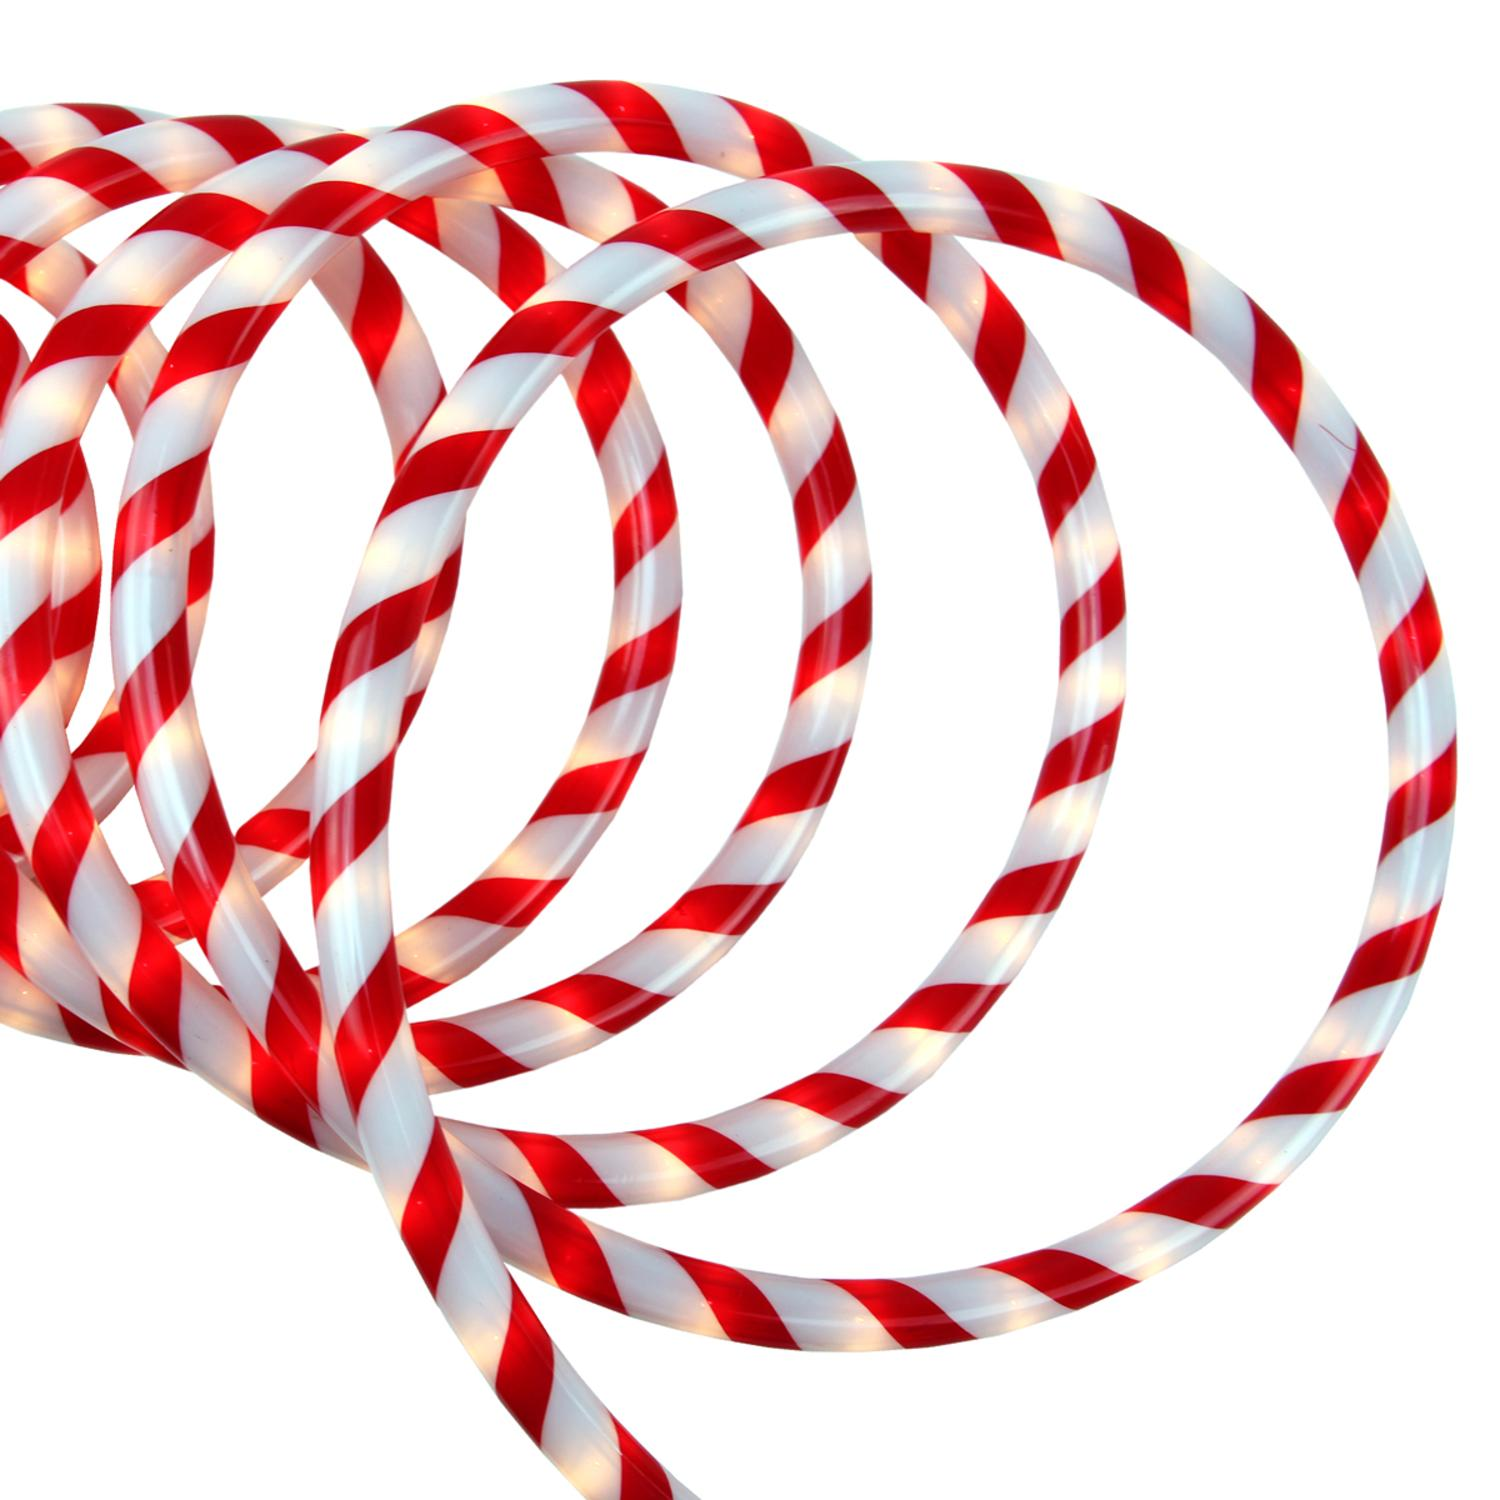 18 Red and White Candy Cane Indoor Outdoor Christmas Rope